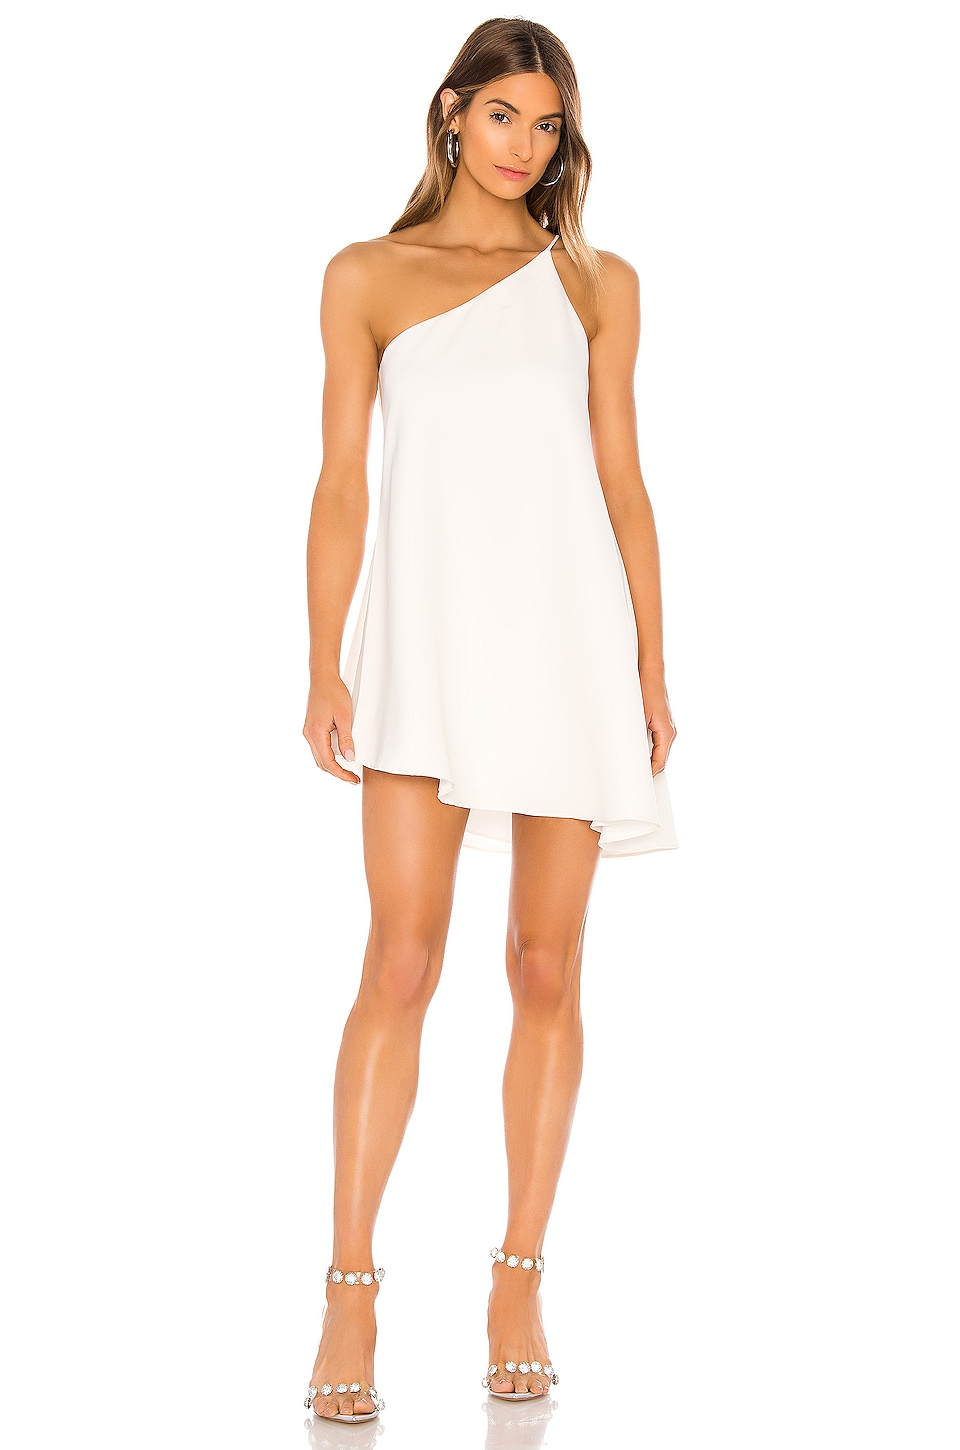 NBD Antoni Mini Dress in White